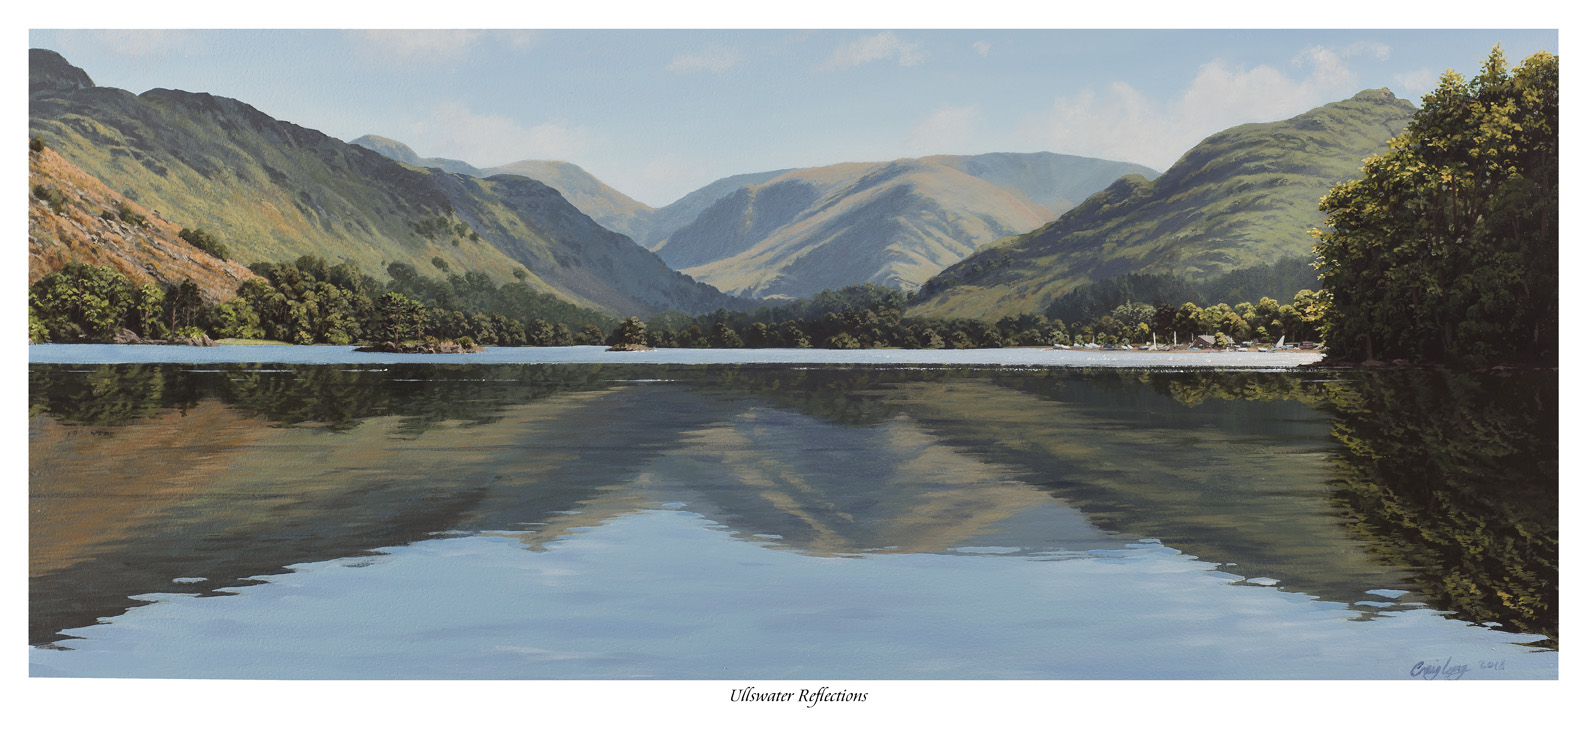 Ullswater Reflections Limited Edition Print - North South Gallery